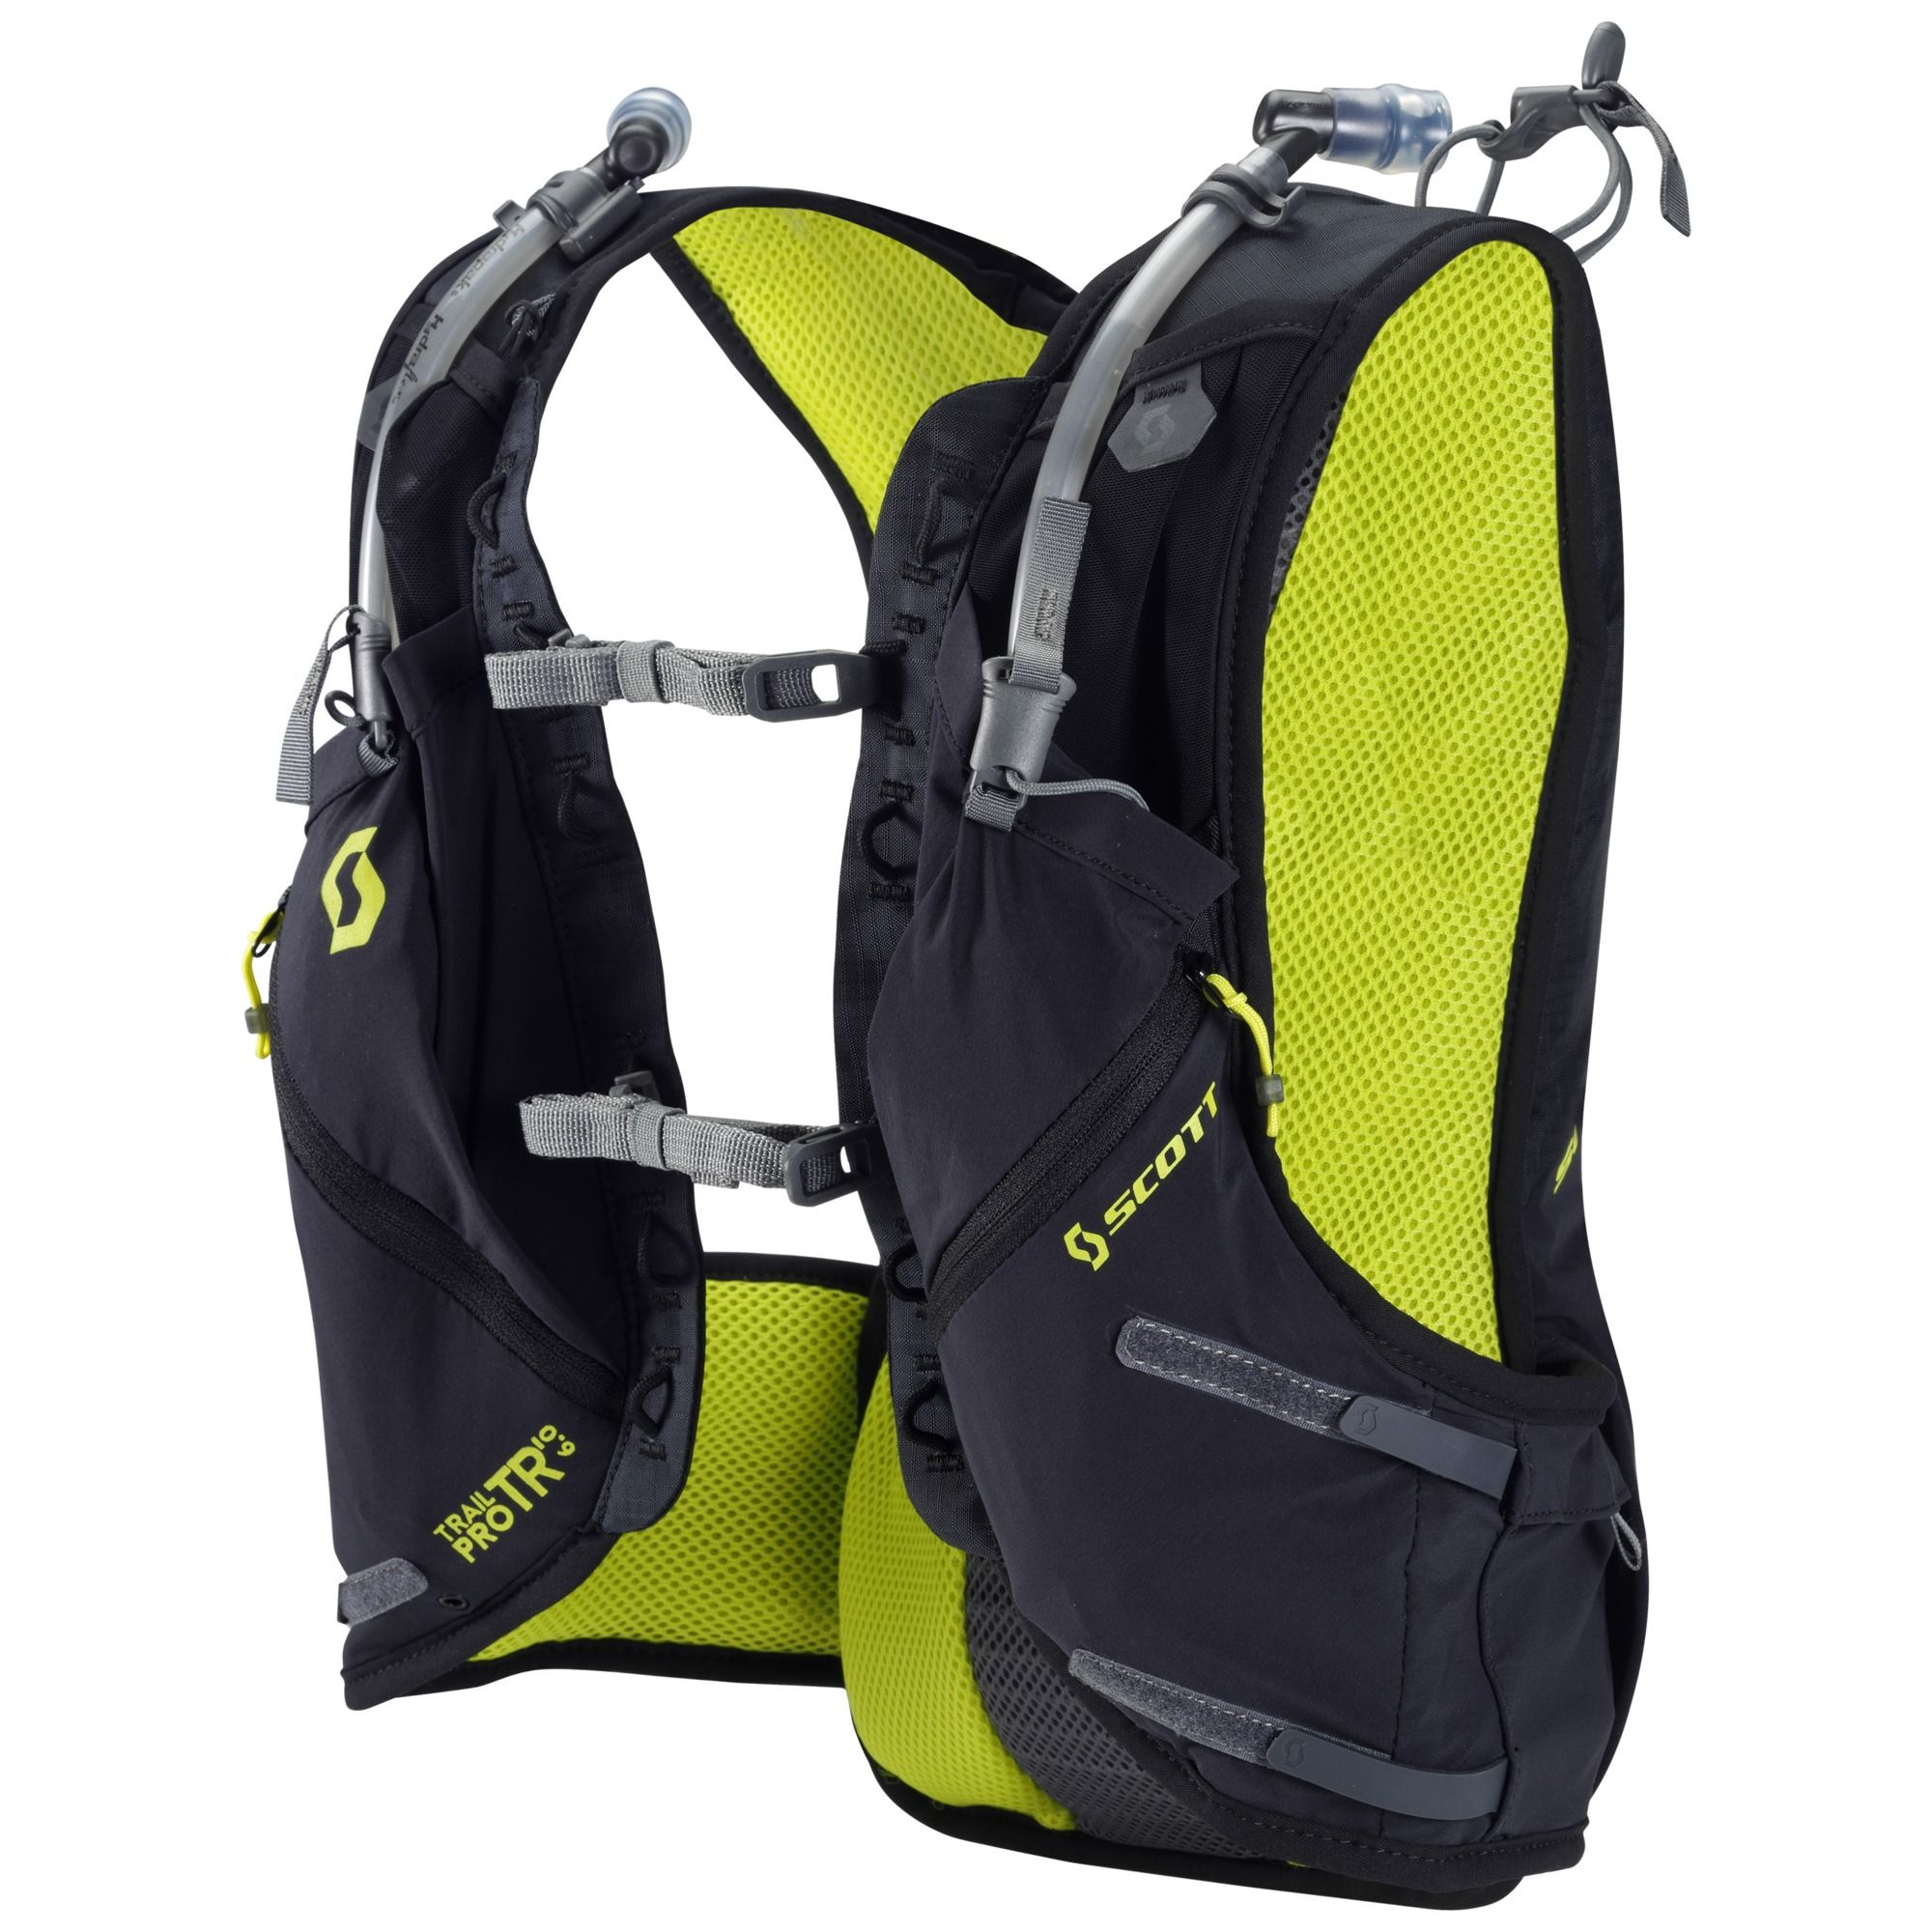 The Scott Trail Pack Pro Is The Ideal Pack For Fast And Performance Oriented Runners Who Seek Minimal Weight But Maximal Functional Sac Sac A Dos Backpack Bag